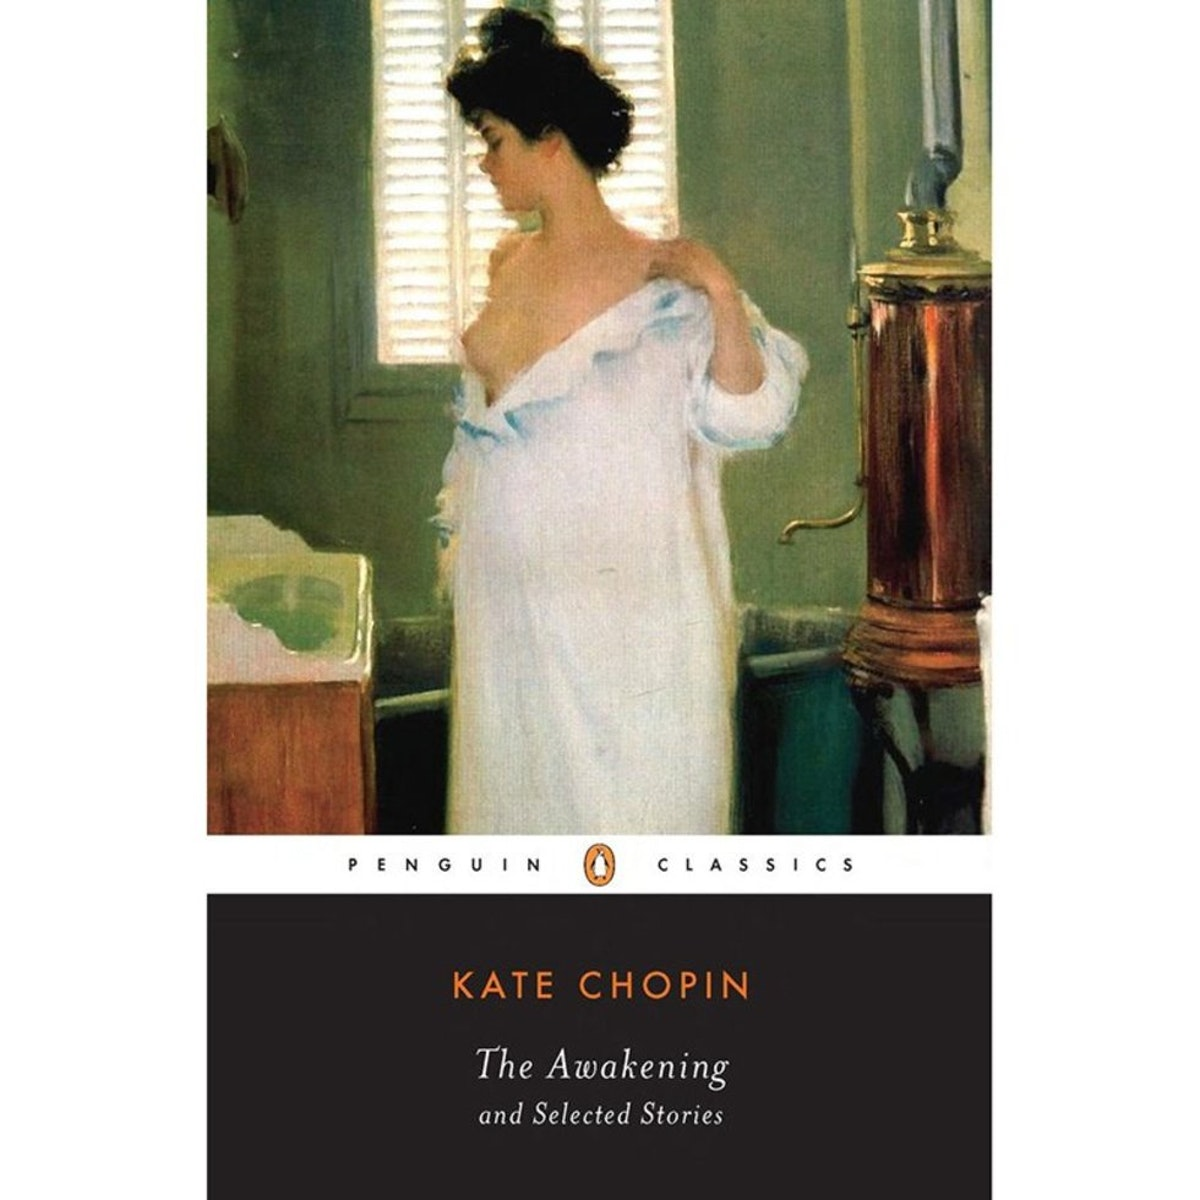 breaking free of the ordinary in the awakening by kate chopin Kate chopin was an american novelist and short-story writer best known for her startling 1899 novel, the awakening born in st louis, she moved to new orleans after marrying oscar chopin in 1870 less than a decade later oscar's cotton business fell on hard times and they moved to his family's plantation in the natchitoches parish of .